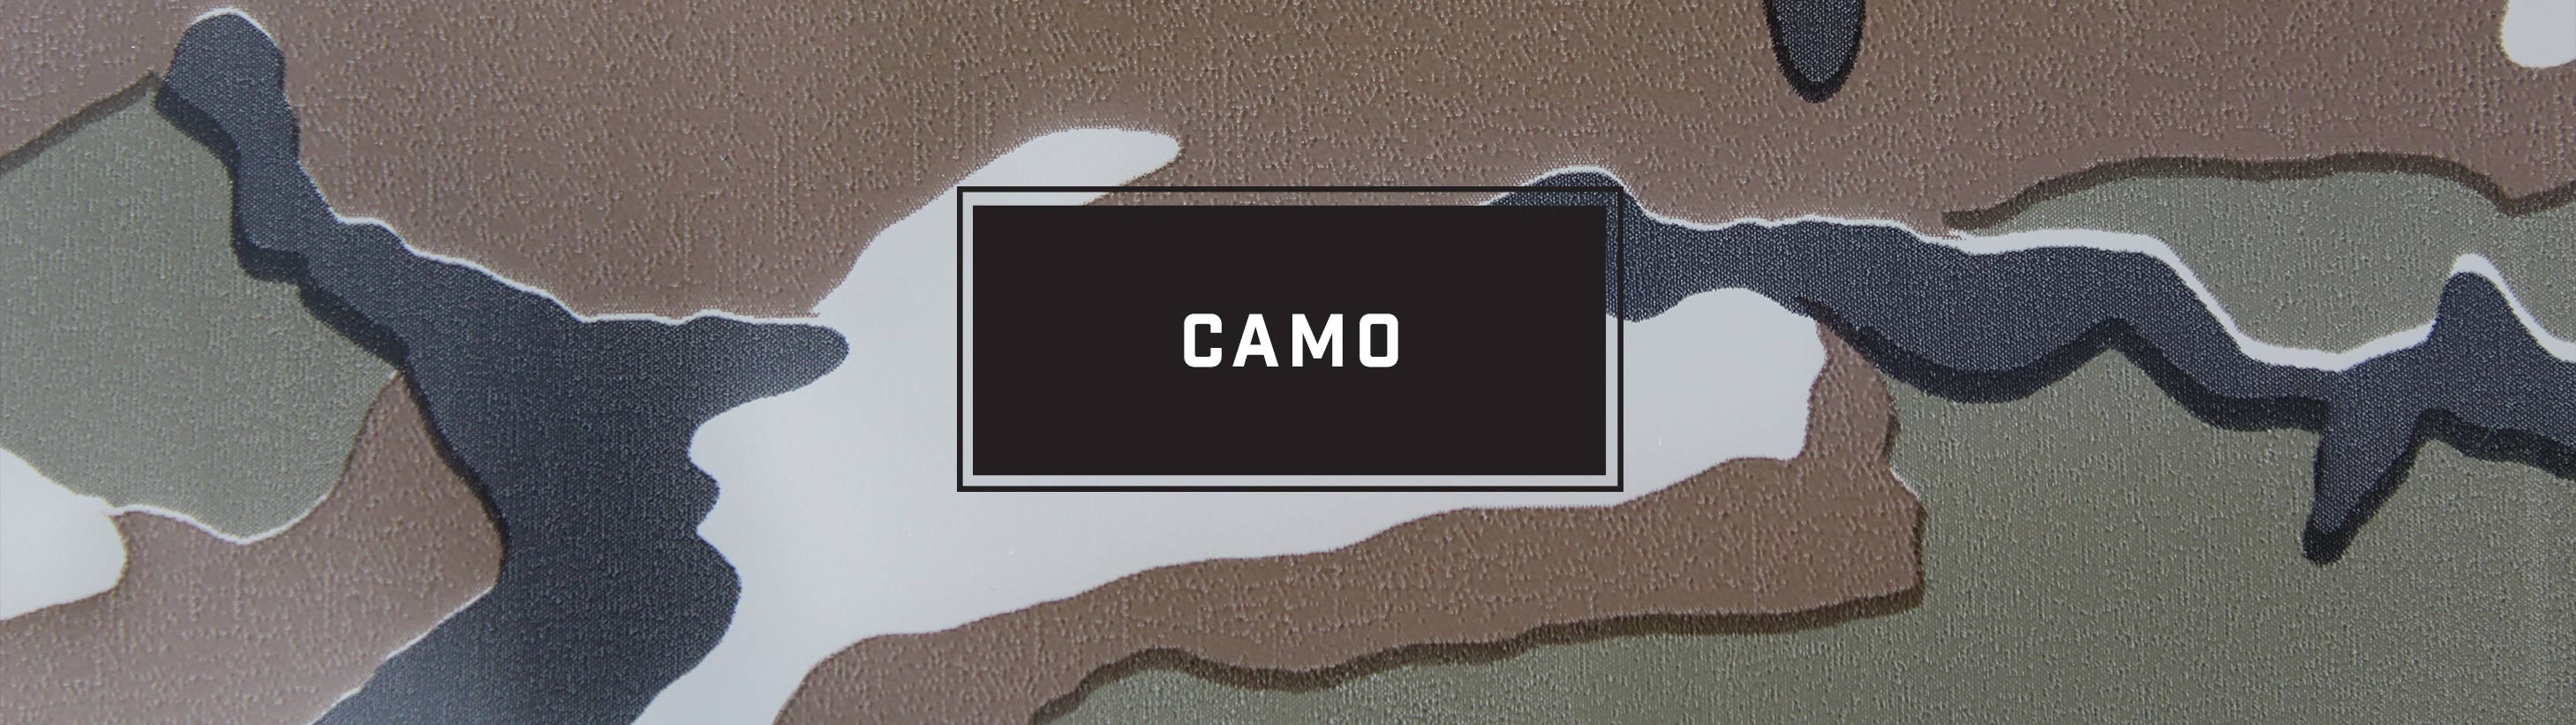 Featured Product: Camo